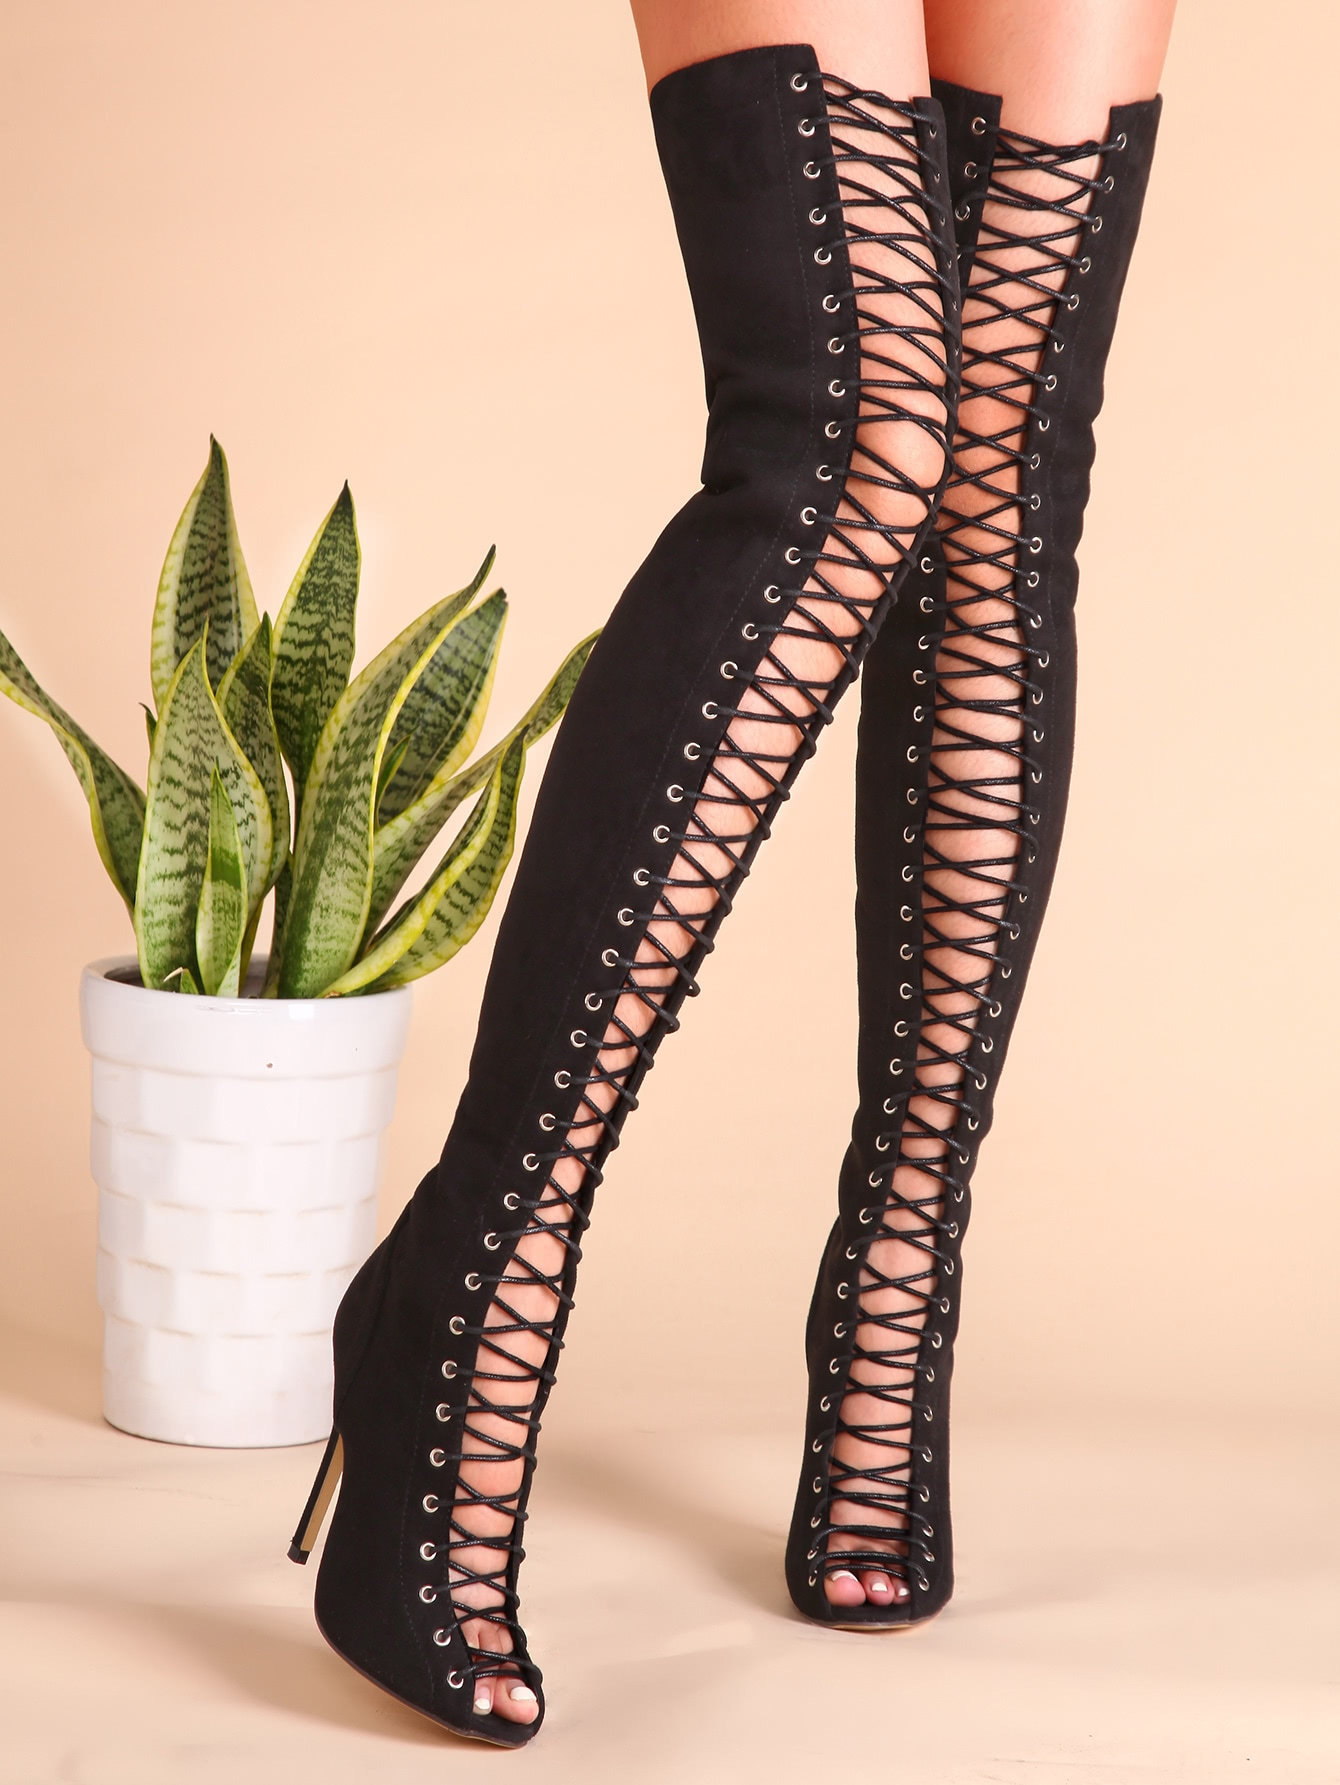 Black Sexy Criss Cross Lace Up Suede Thigh High Boots модуль светодиодный эра lm 5 840 c1